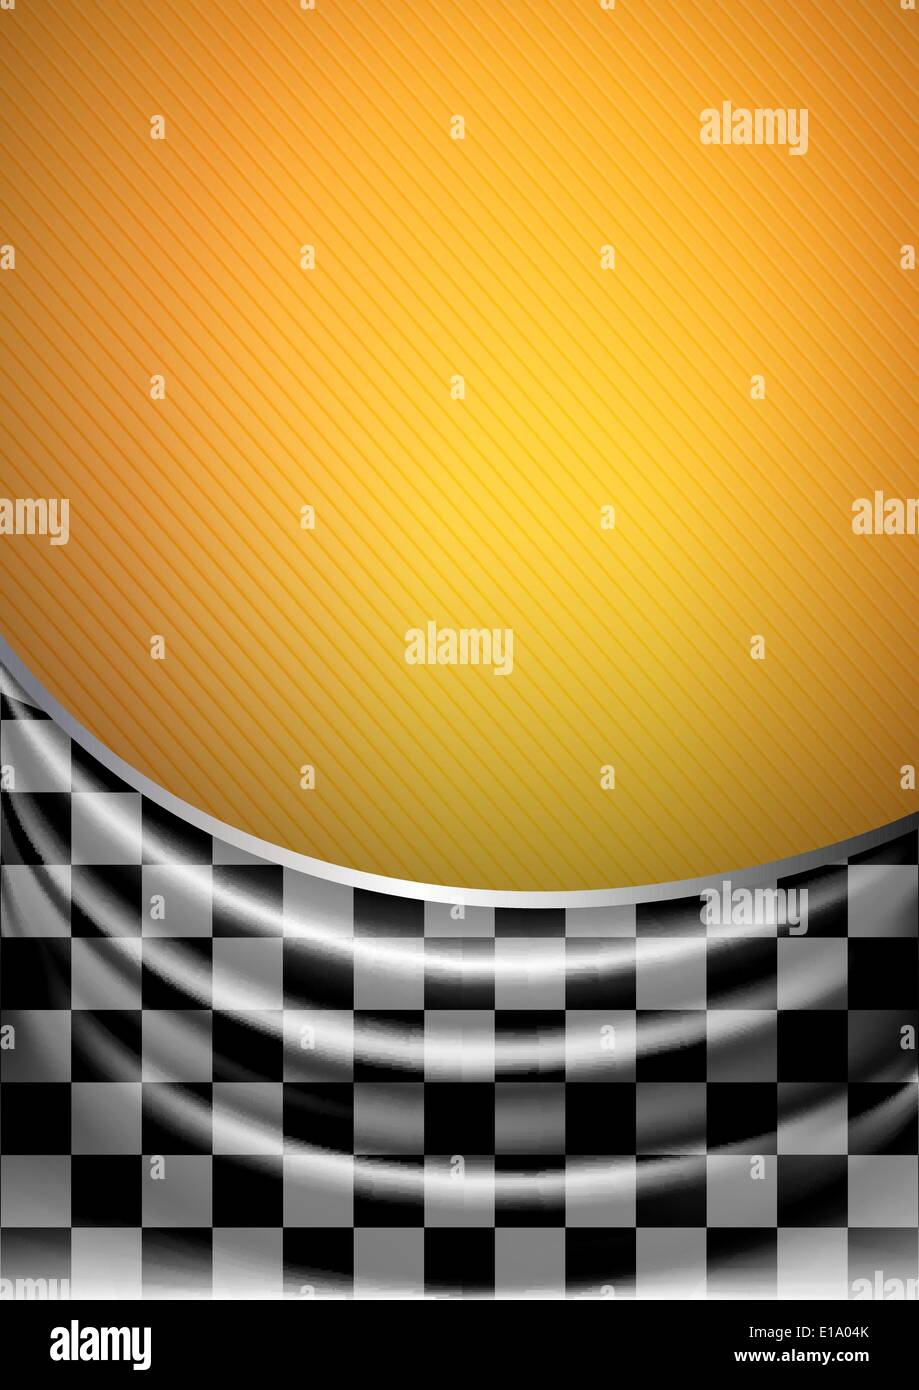 Silk tissue in checkered on a yellow background, vector illustration eps10 - Stock Vector